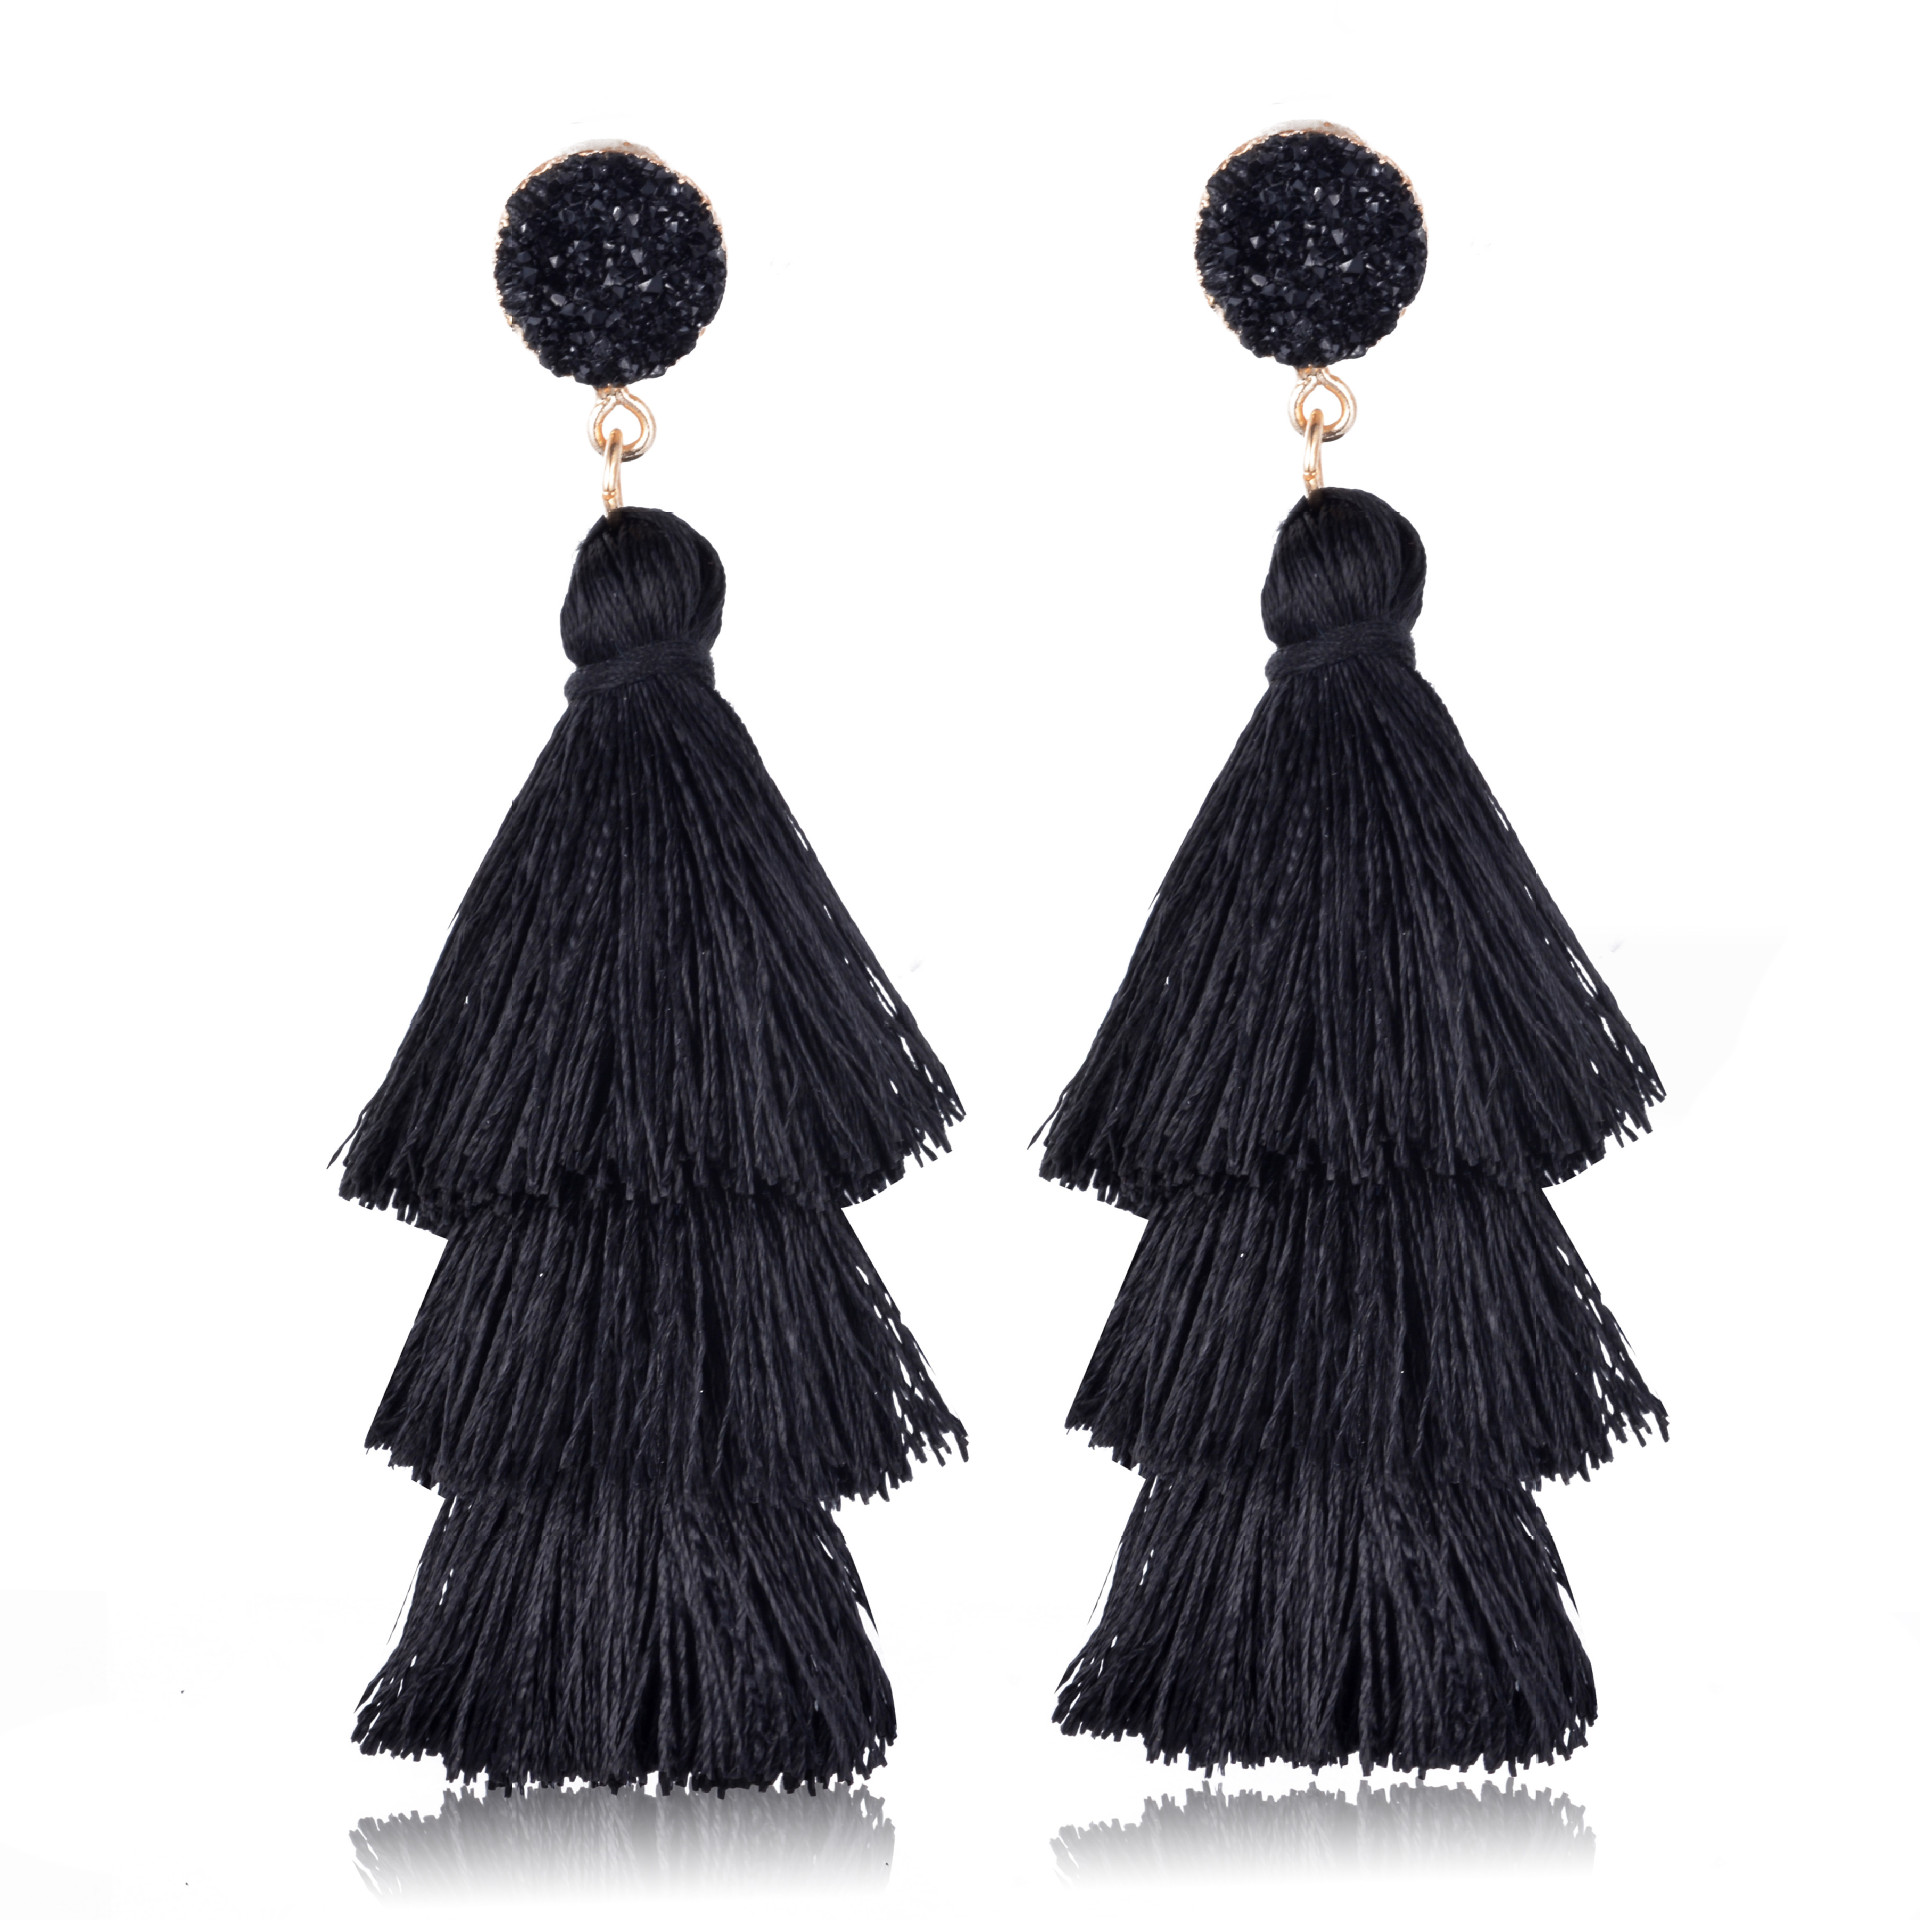 648aff0984a81a POSHFEEL Colorful Layered Tassel Earrings Bohemian Dangle Drop Tiered Tassel  Druzy Earrings for Women Gifts Wedding Jewelry